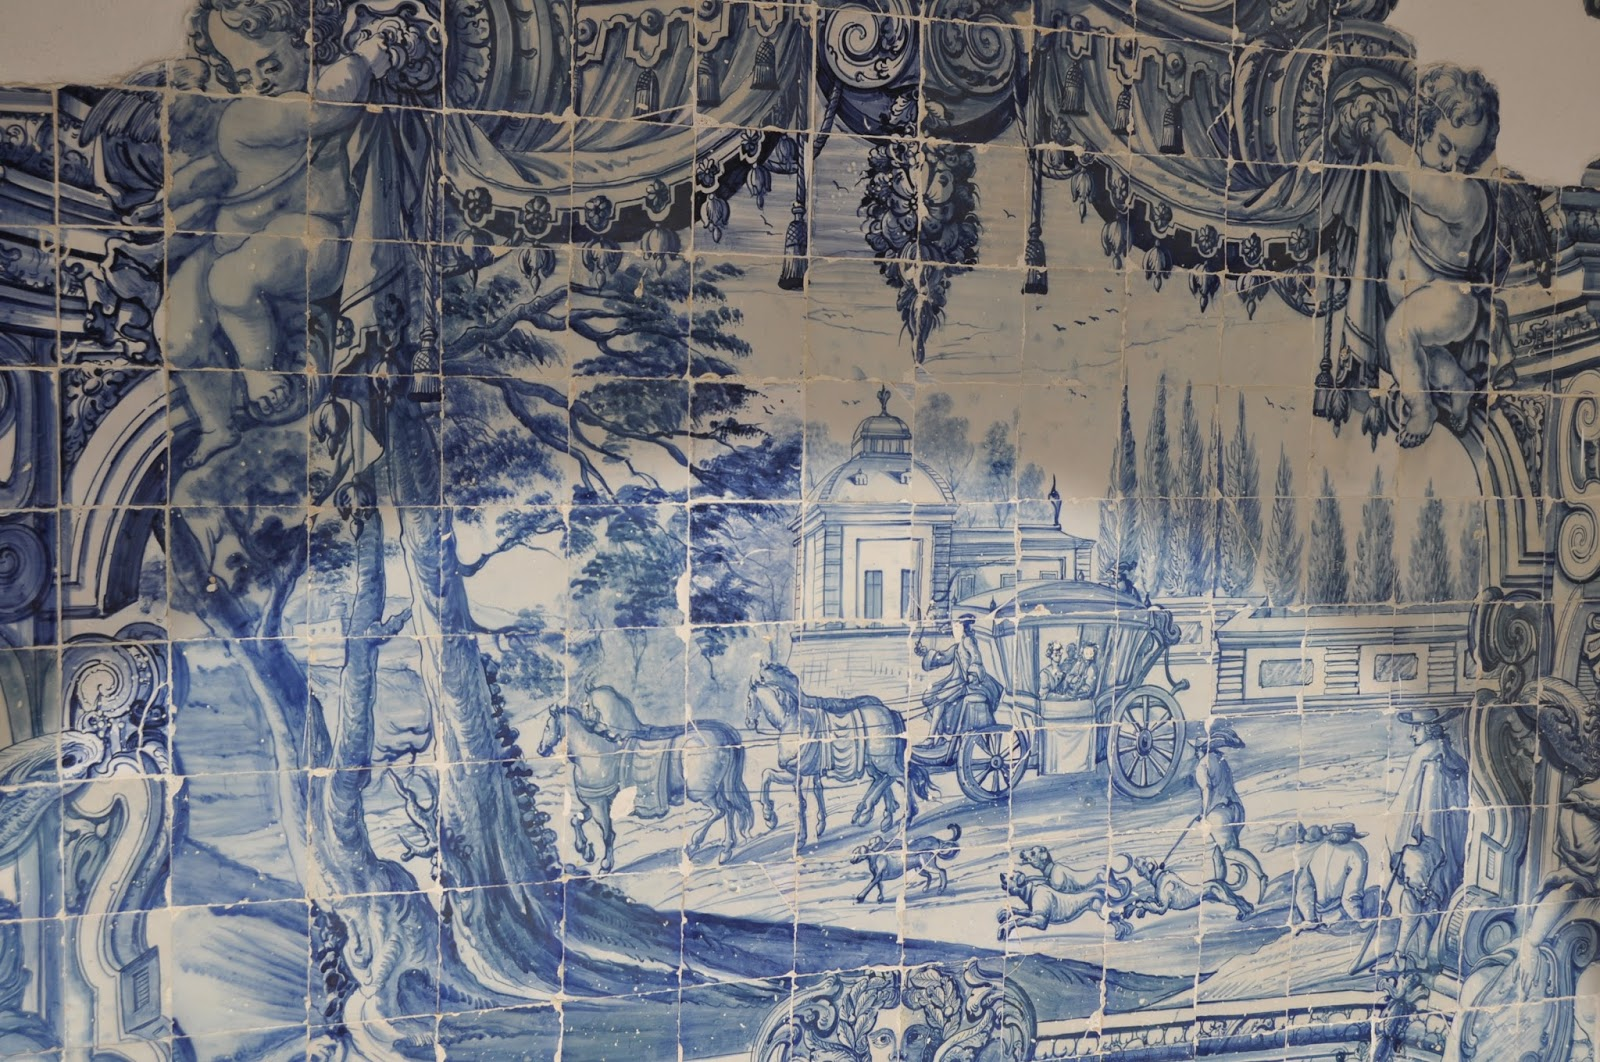 azulejo tiles, 8 Great Discoveries in Lisbon, photo by Modern Bric a Brac